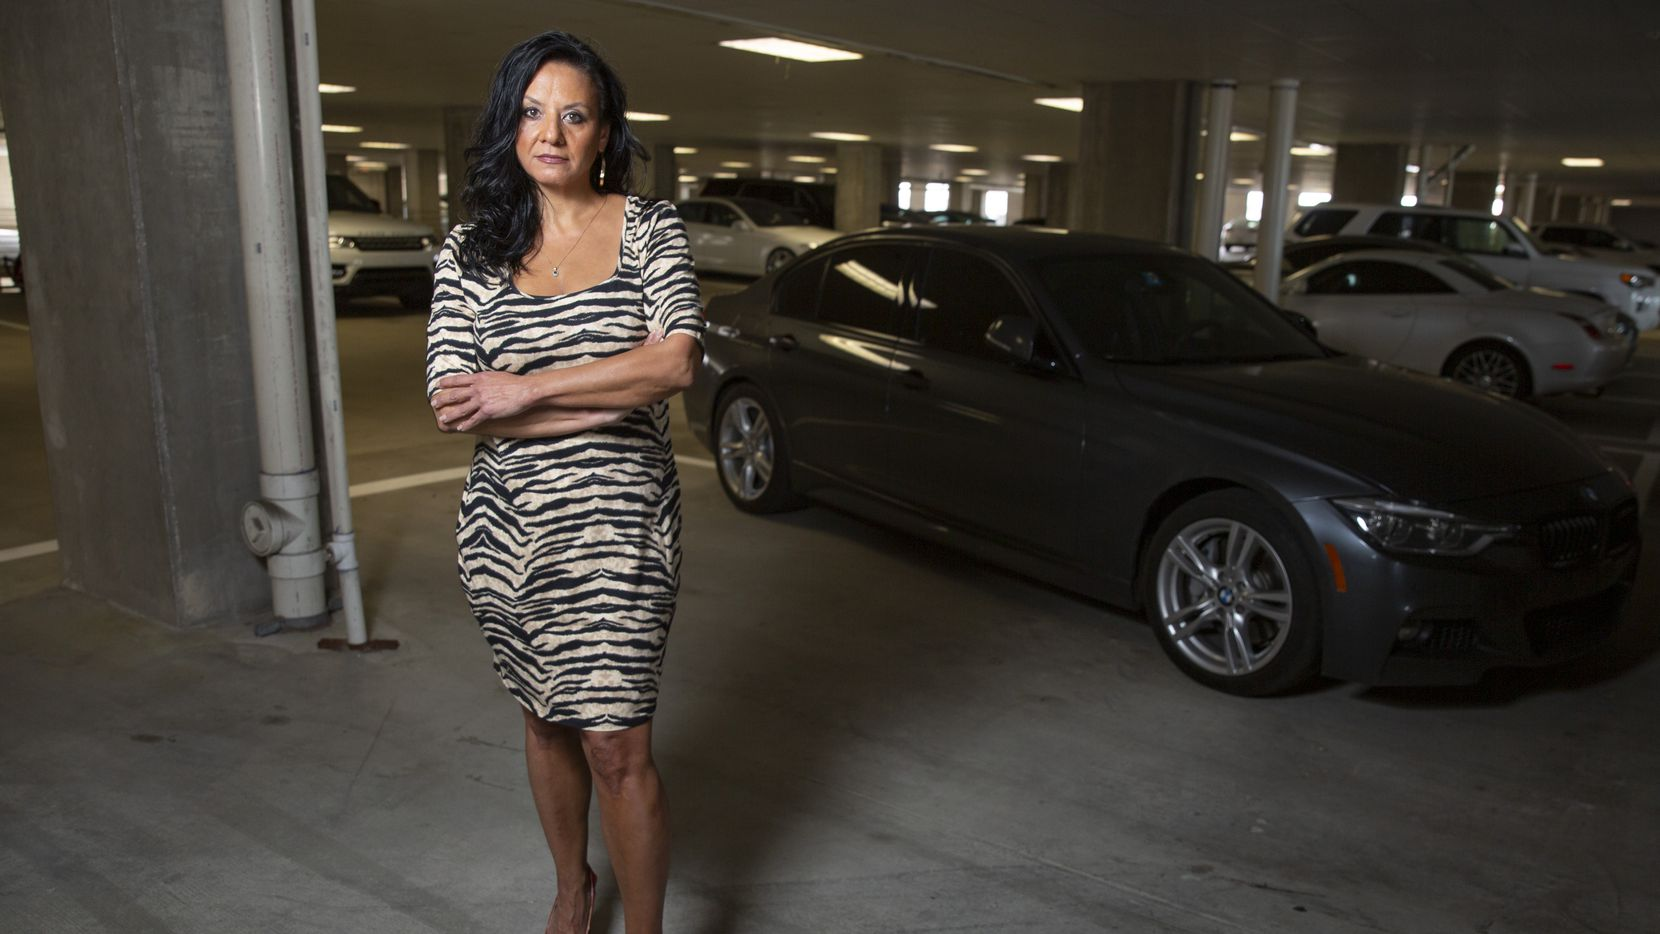 Melissa Anderson stands in the parking garage where not one but two Corvettes belonging to her were stolen this year. All together, she learned that 11 expensive cars were stolen since January from the garage at 1400 Hi Line Drive in the AMLI Design District in Dallas.